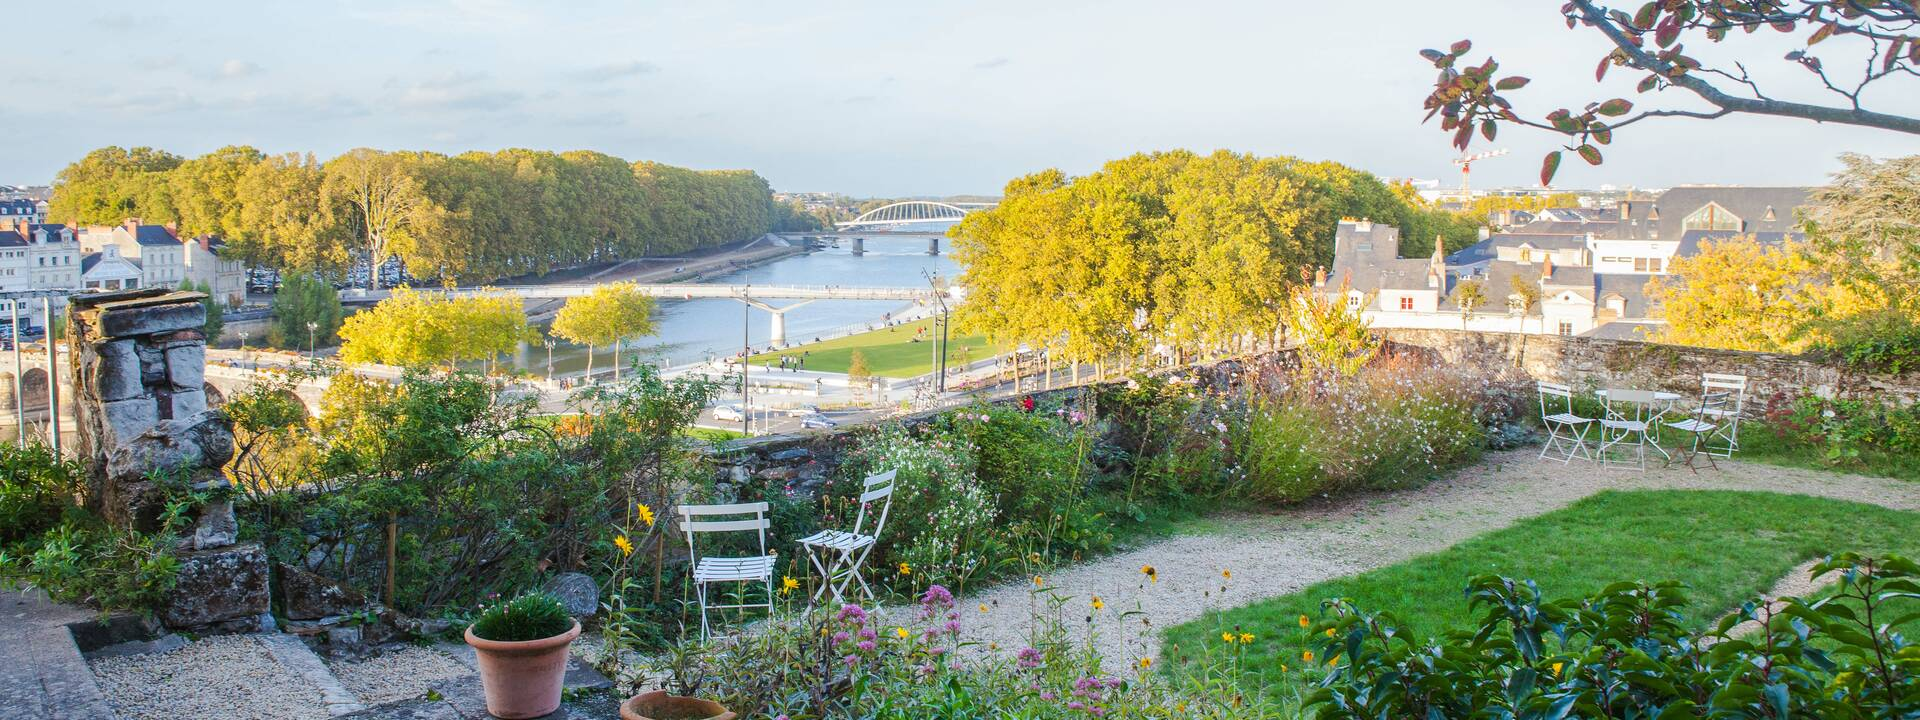 View of Maine from the Donadieu Salons © Destination Angers